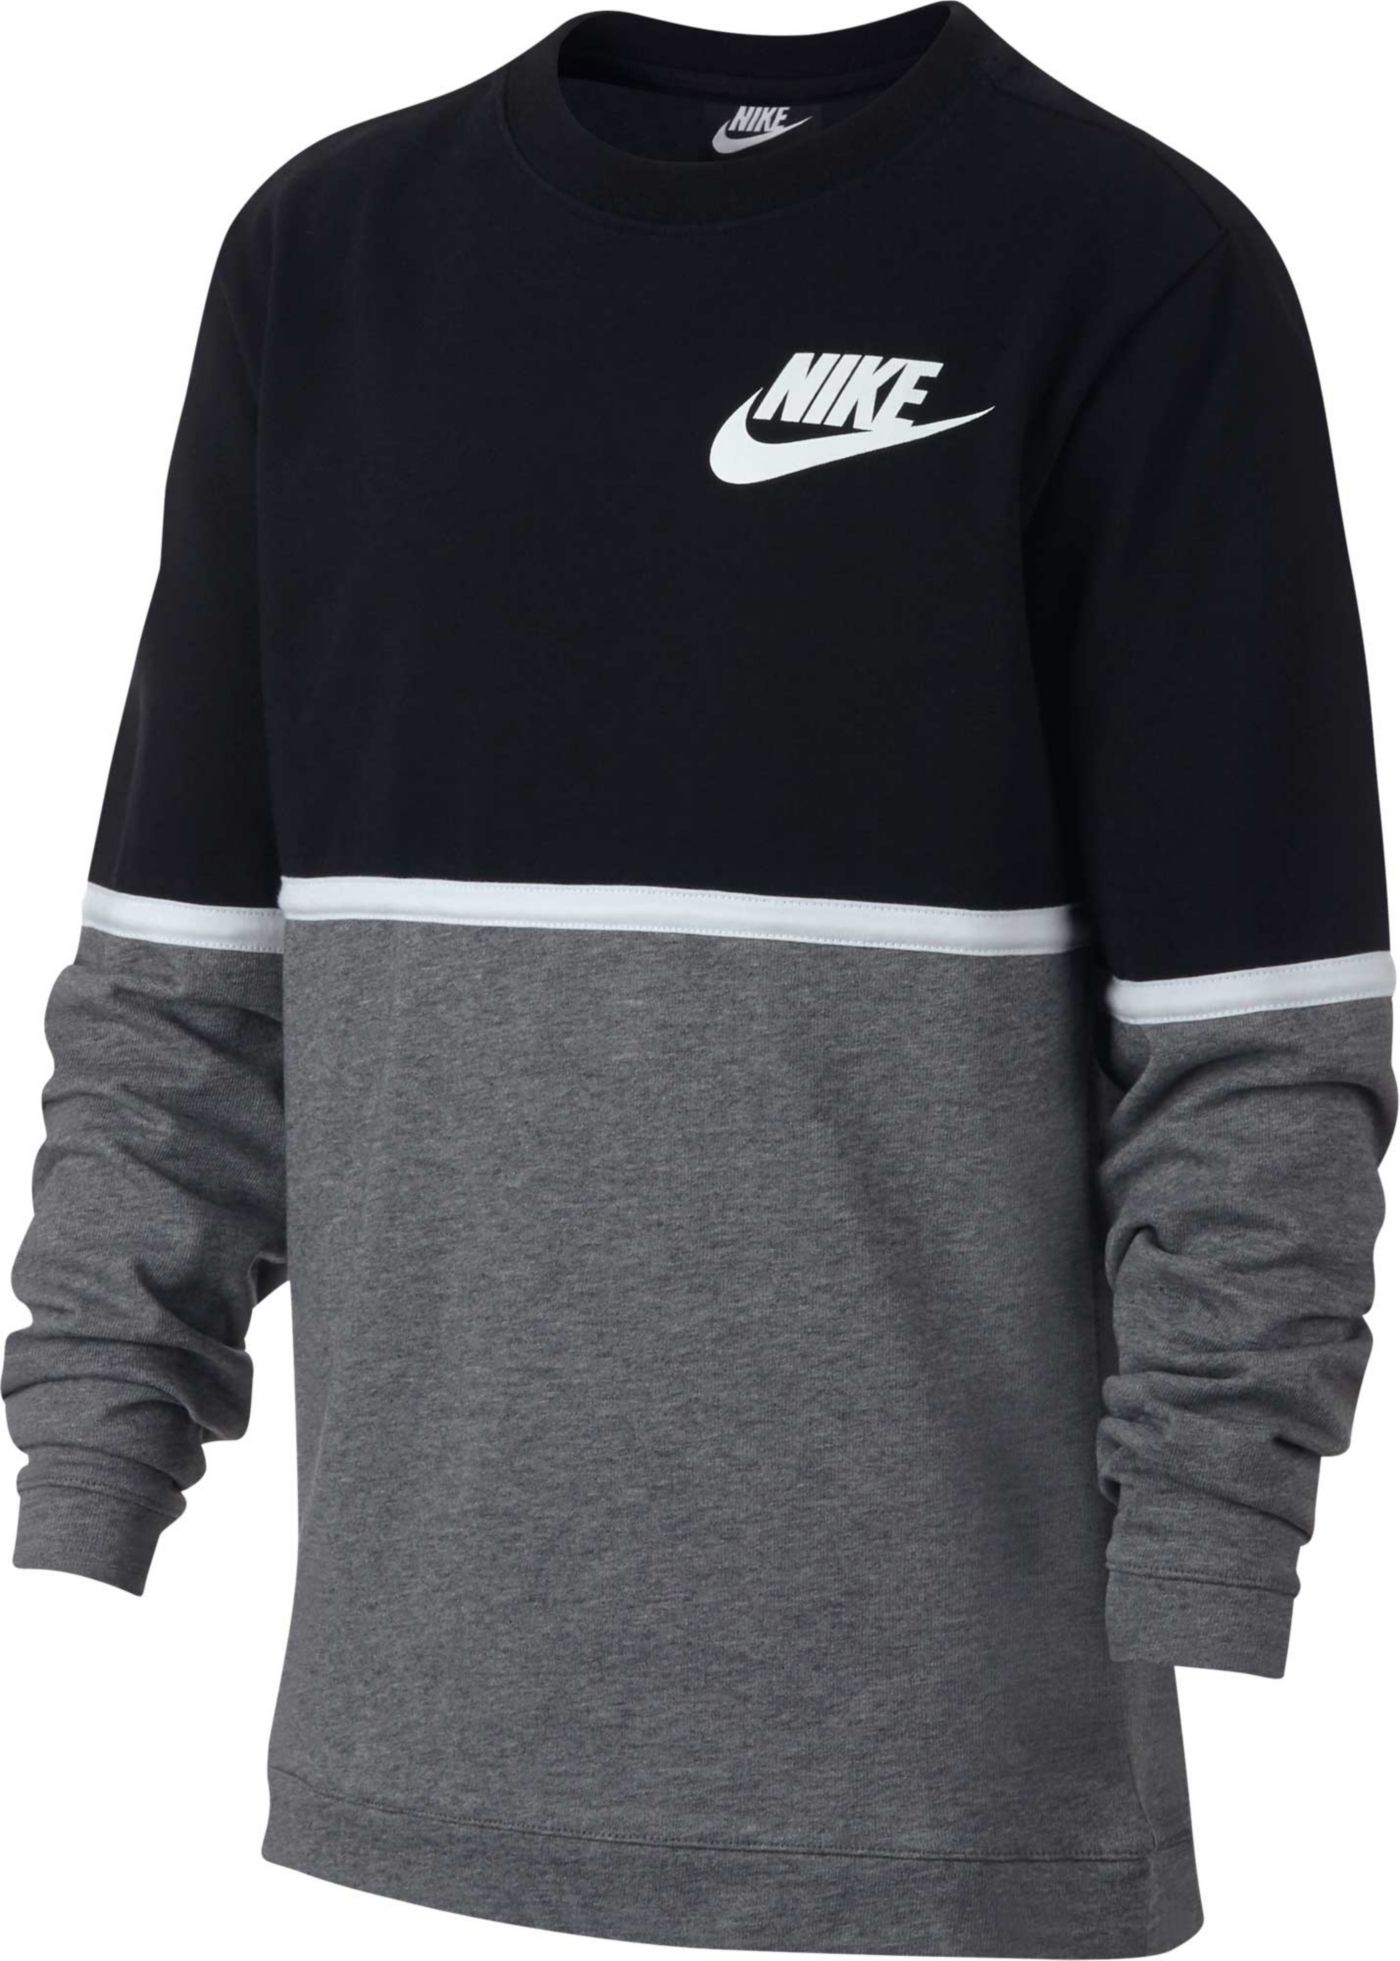 Nike Boys' Sportswear Advance 15 Long Sleeve Tee